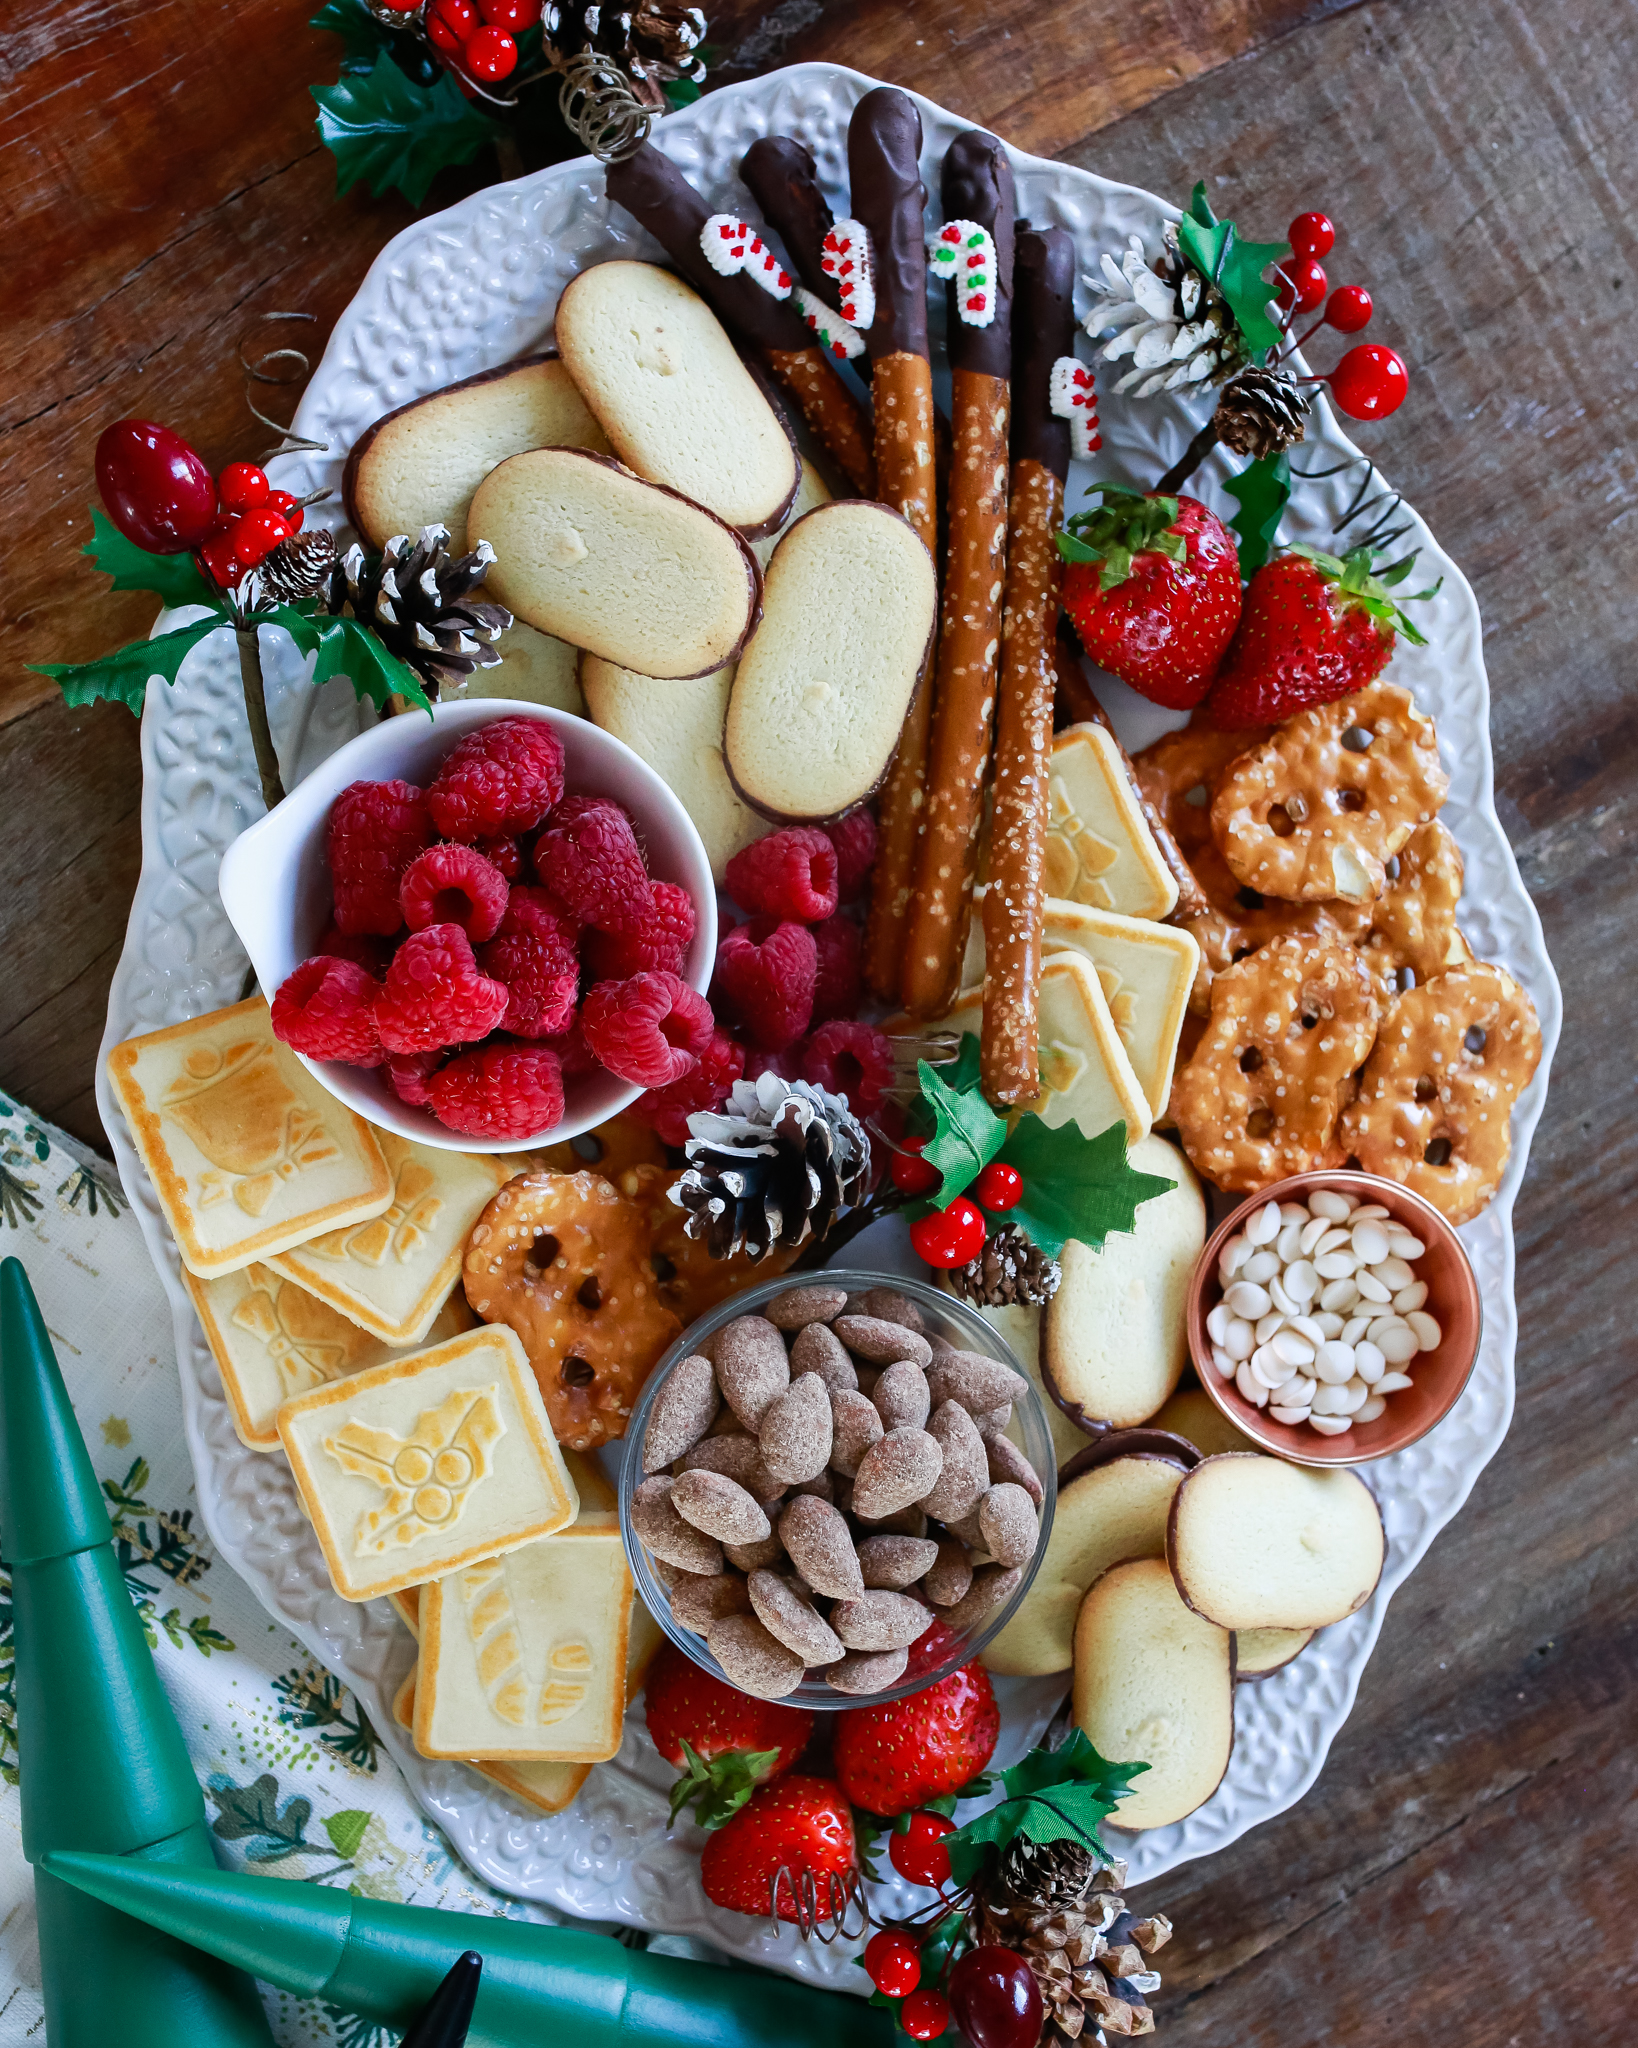 """The ultimate holiday """"charcuterie"""" treat board. All good things combined to make one simple delightful tray of holiday cheer."""